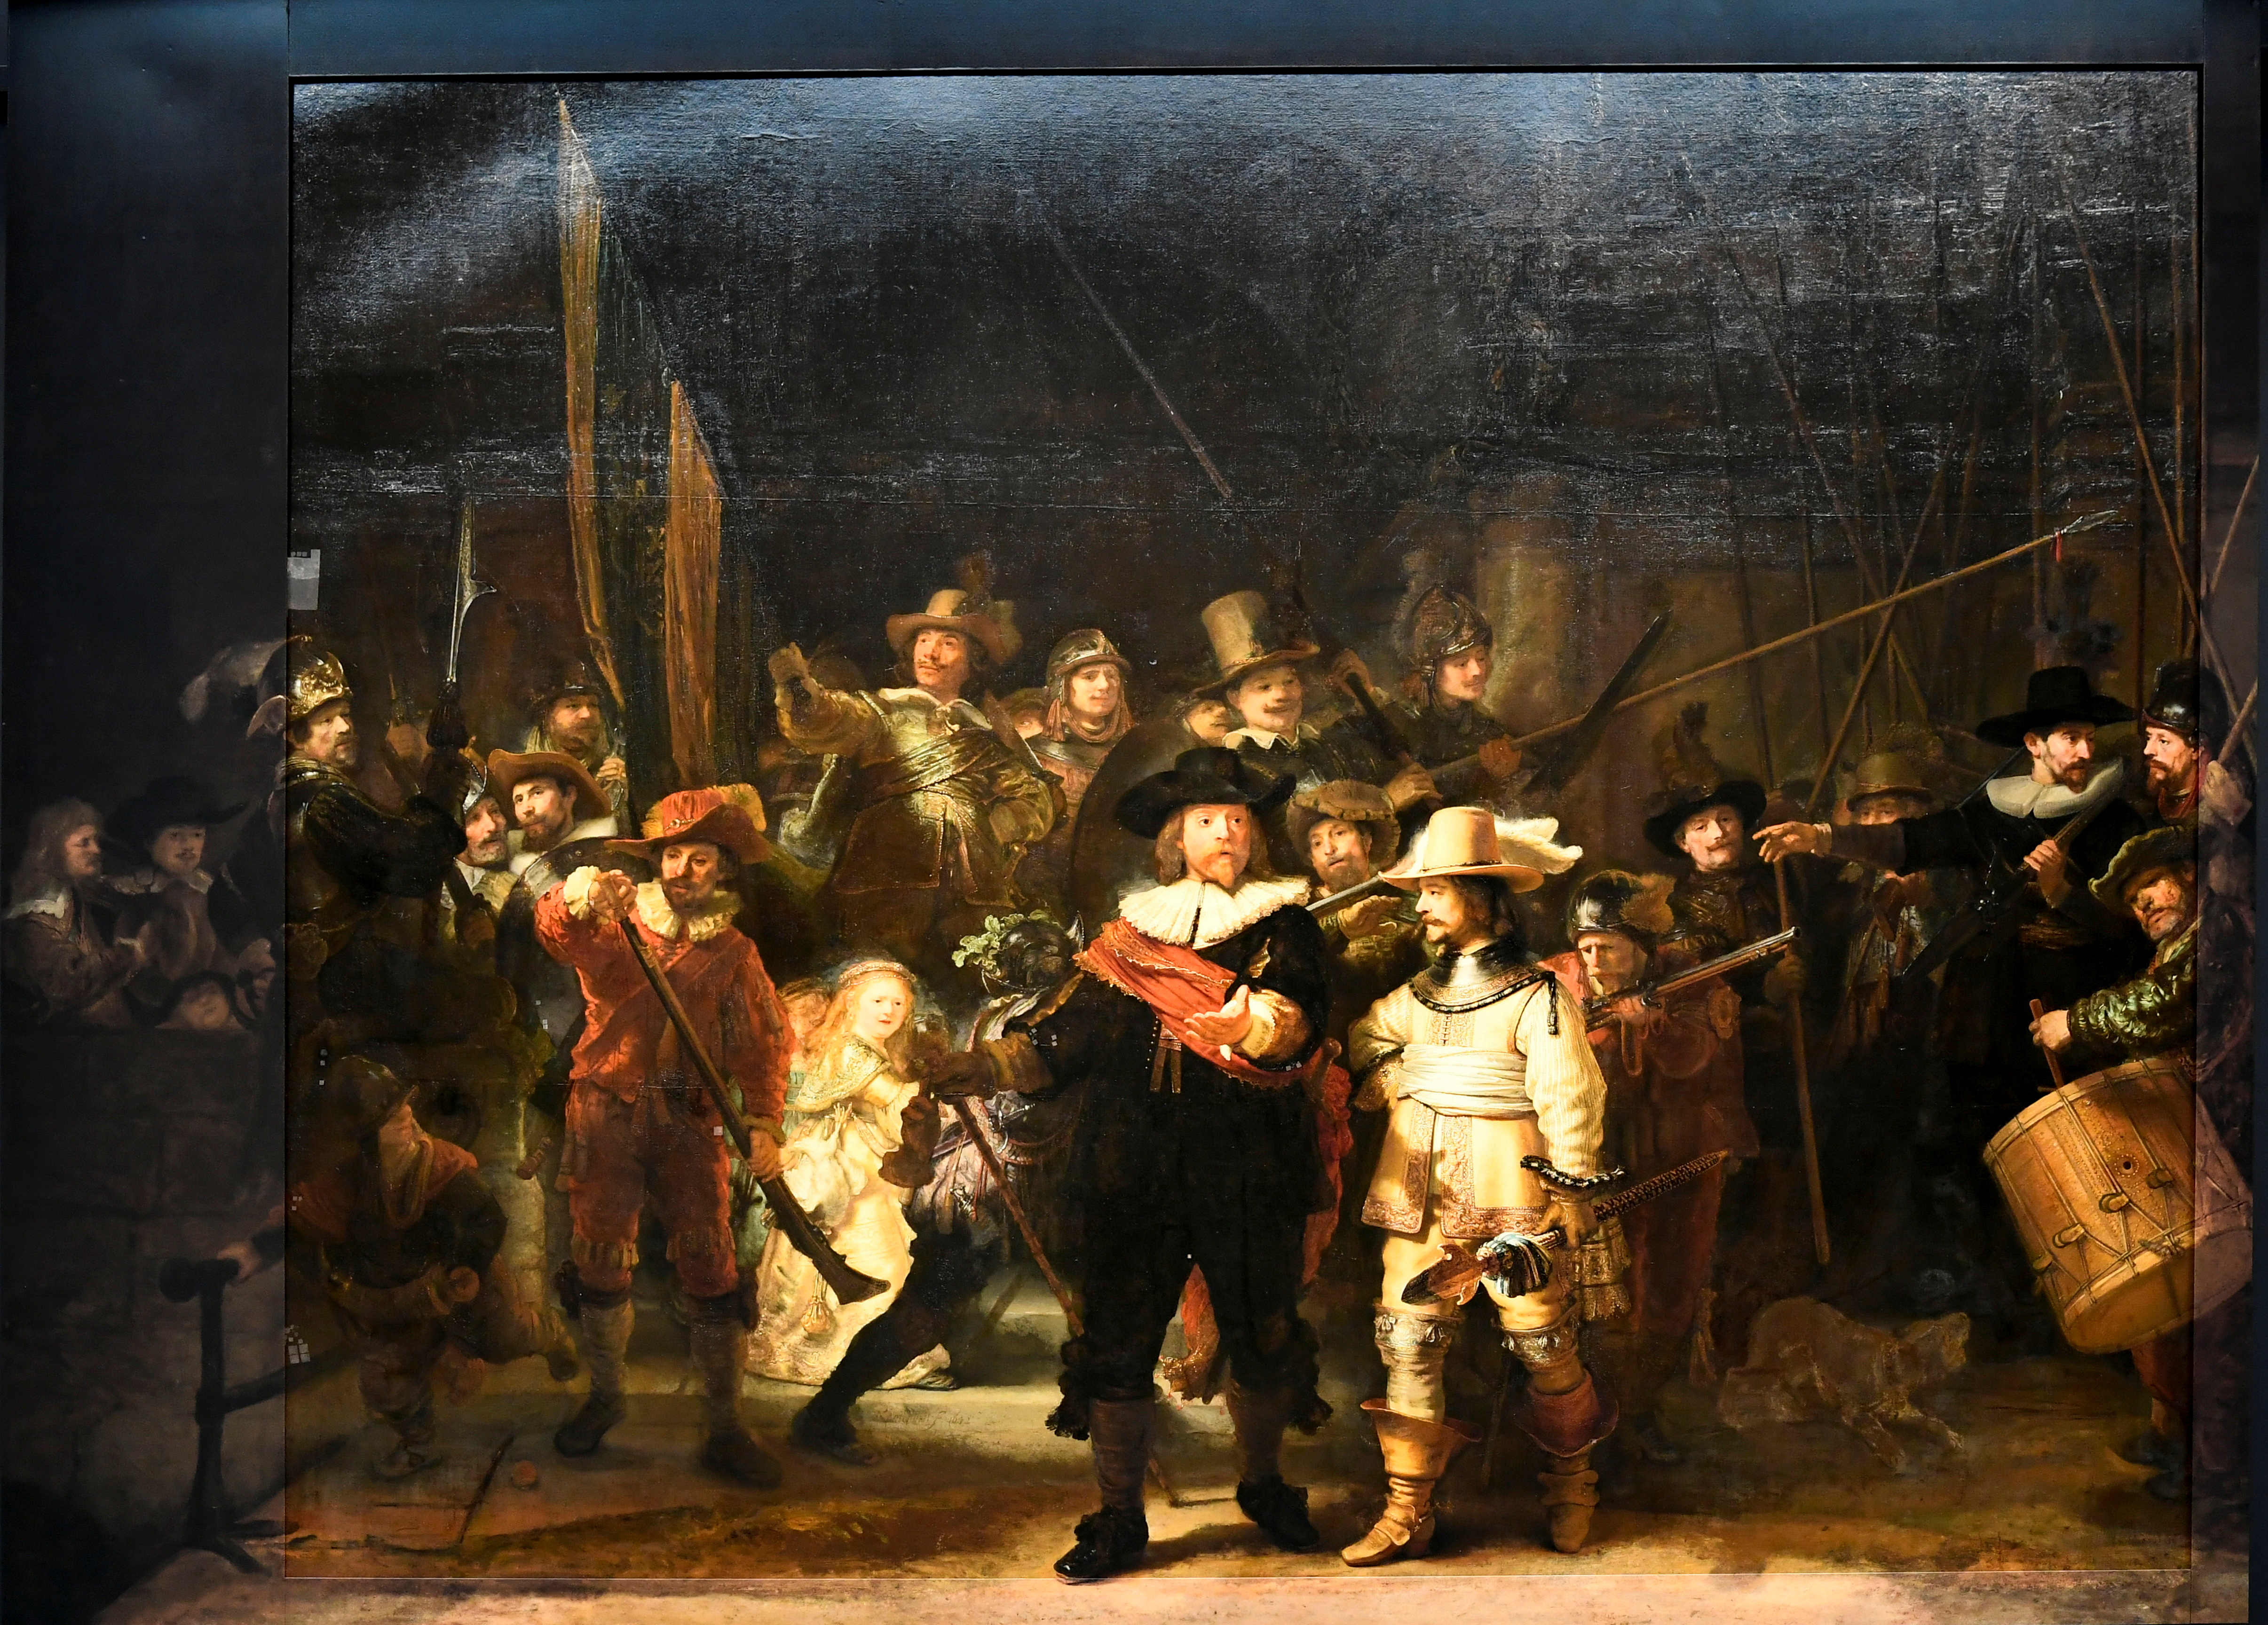 Rembrandt's famed Night Watch is seen back on display for the first time in 300 years, in what researchers say is its original size, with missing parts temporarily restored in an exhibition aided by artificial intelligence at Rijksmuseum in Amsterdam, Netherlands June 23, 2021. REUTERS/Piroschka van de Wouw